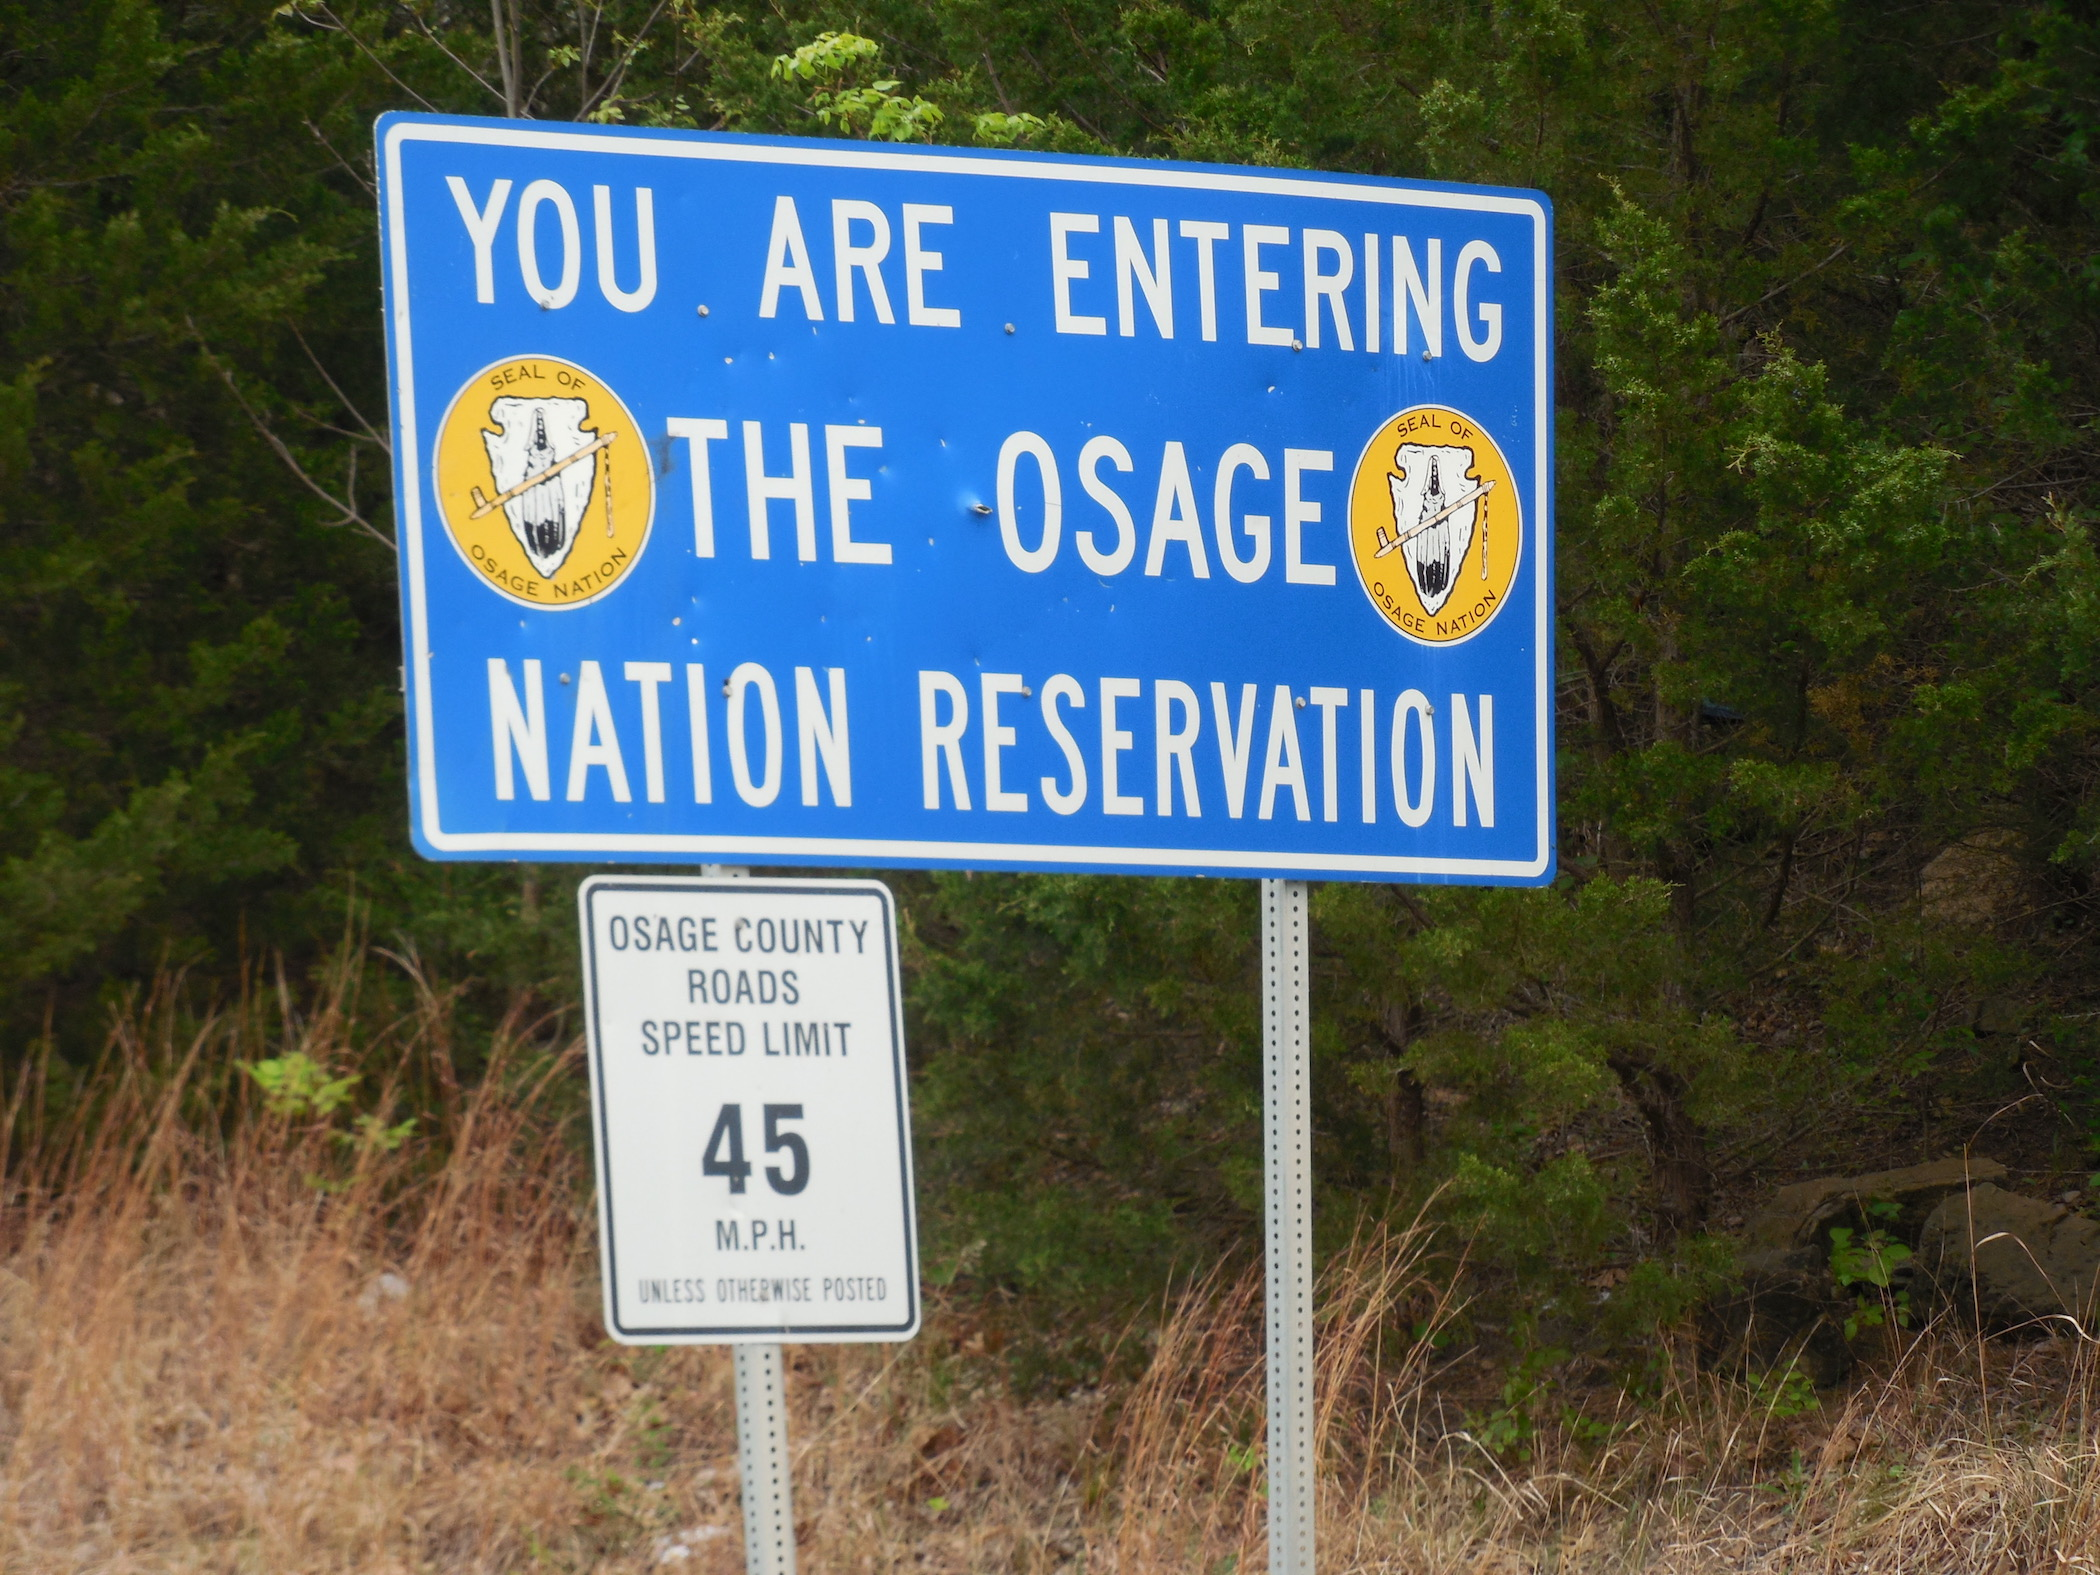 Osage Nation passes referendum to legalize same-sex marriage